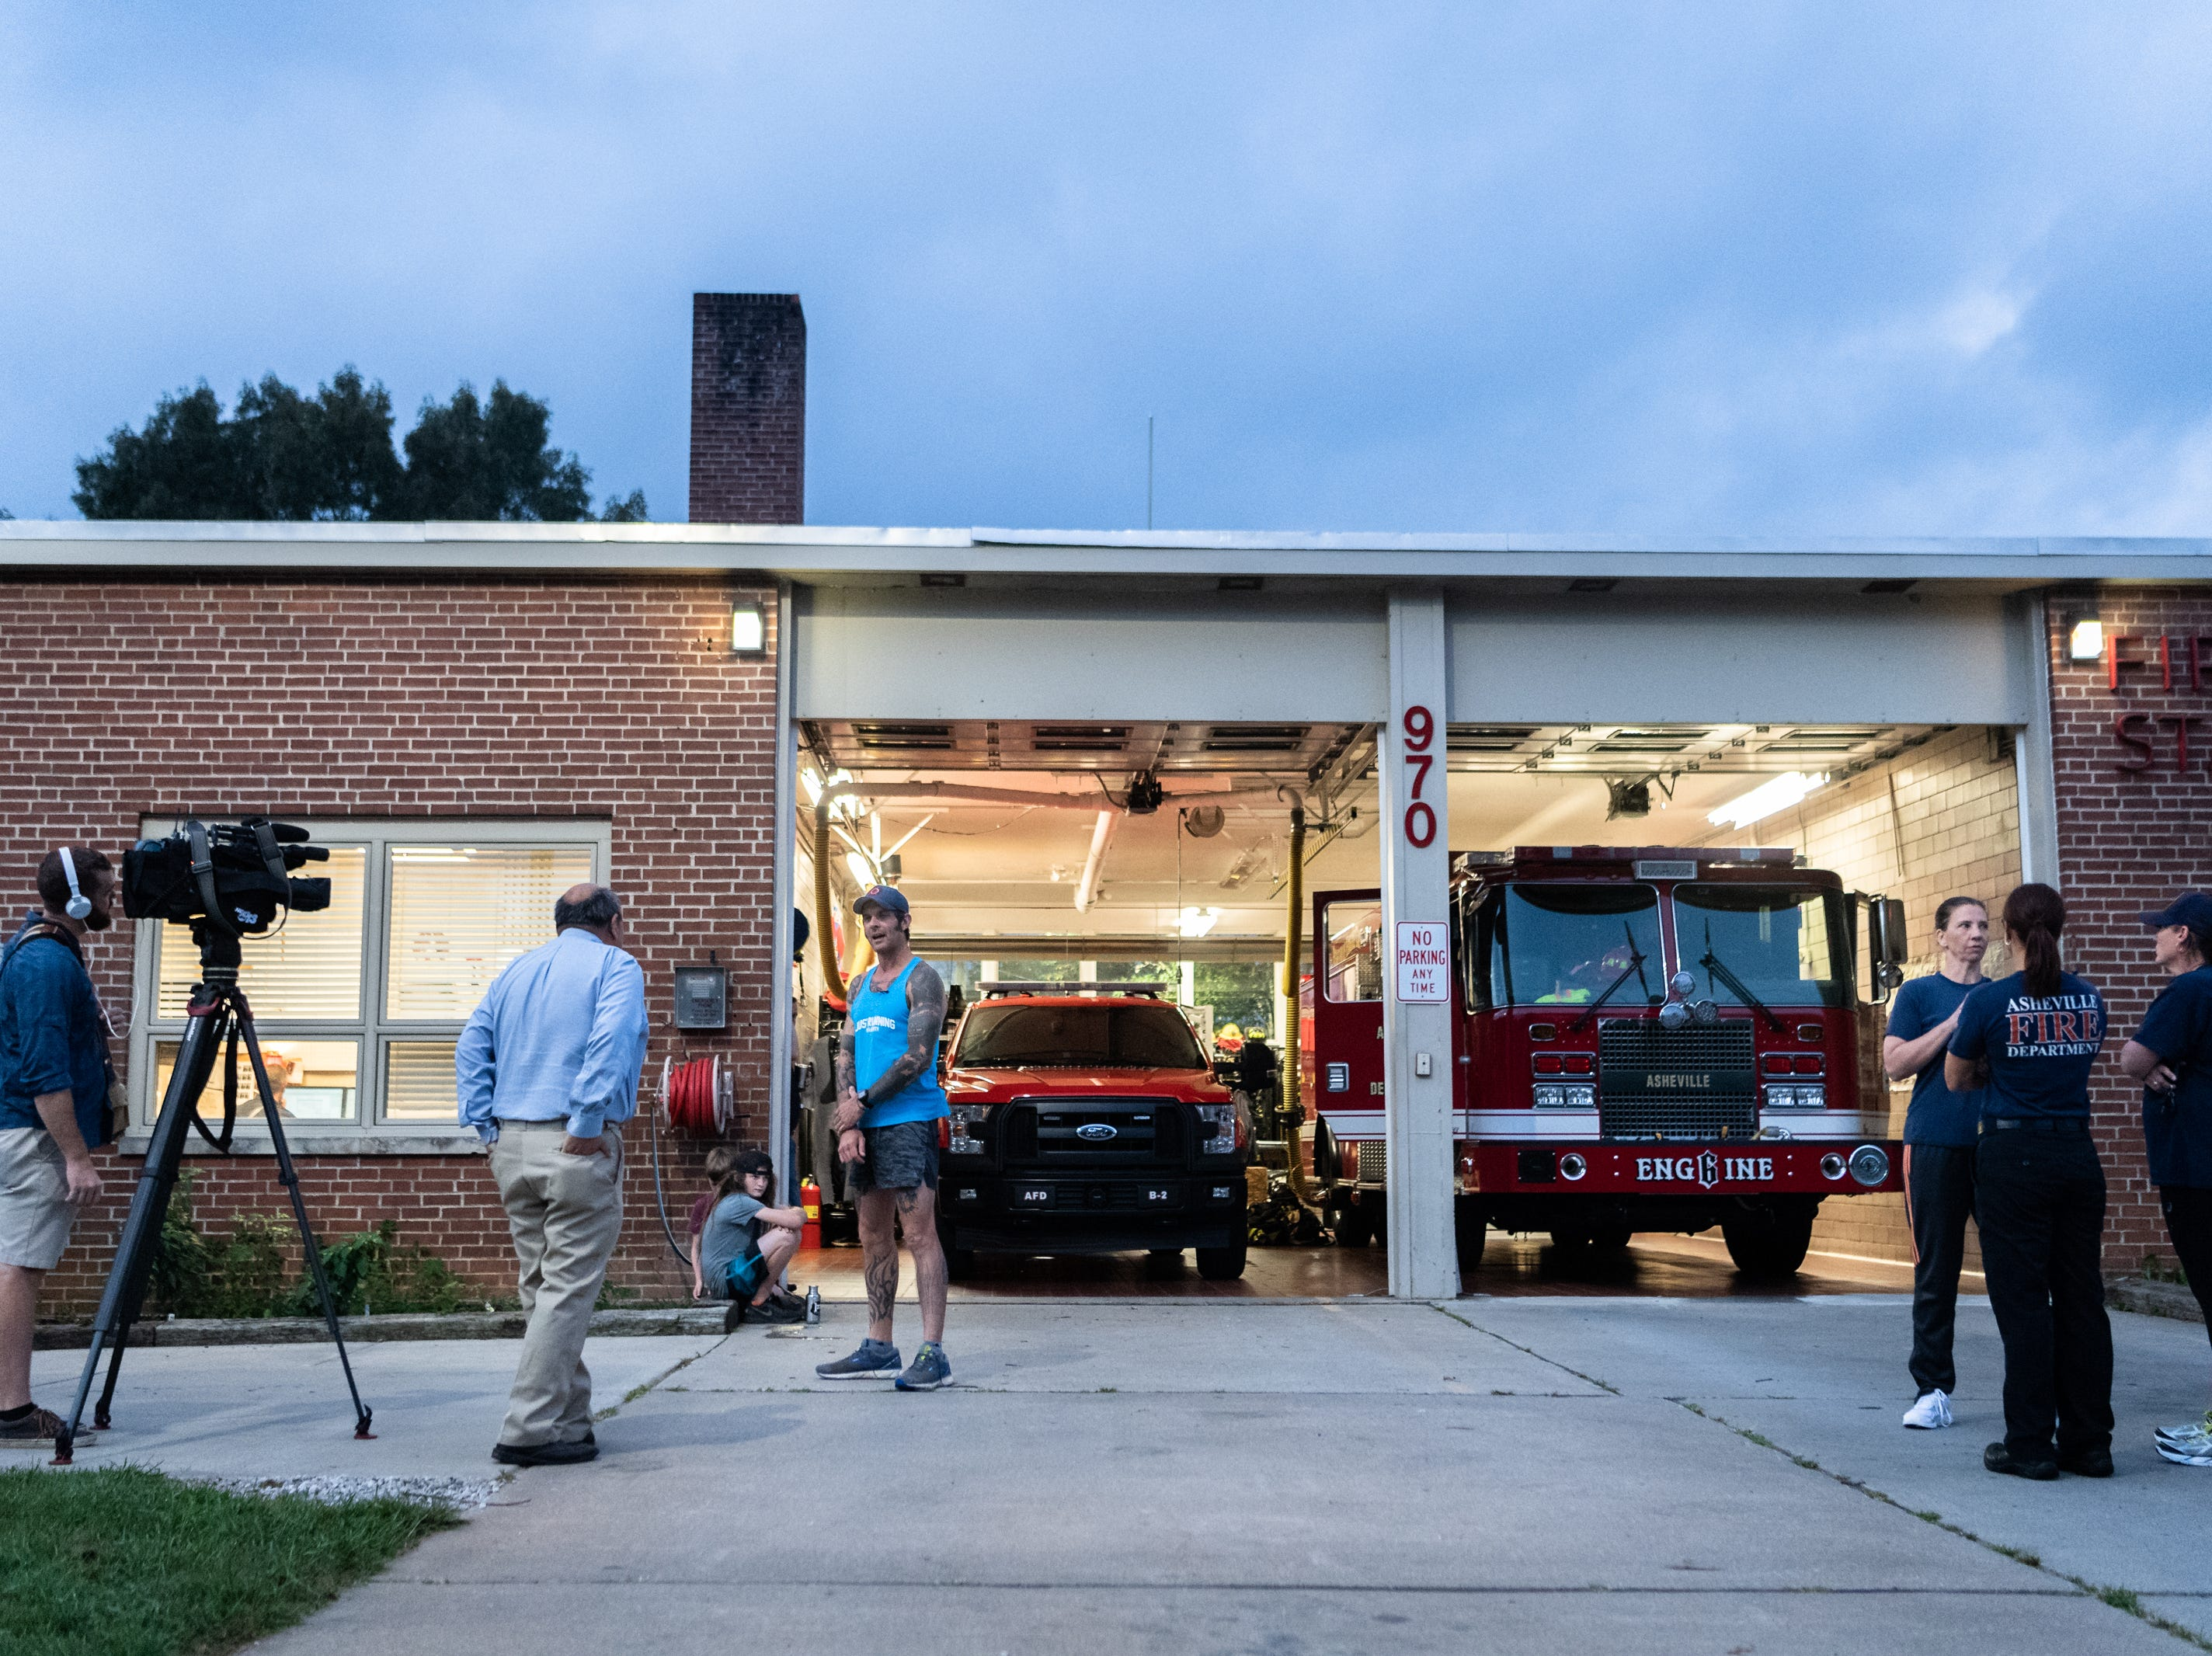 Mikey Riley, an Asheville firefighter, is interviewed at station 6 on Haywood Road before beginning his 100k run to Ebbs Chapel and back Oct. 8, 2018. Riley is running one mile for every firefighter who has ever been diagnosed with cancer in an effort to raise awareness of firefighters' higher risk of cancer than the general population.